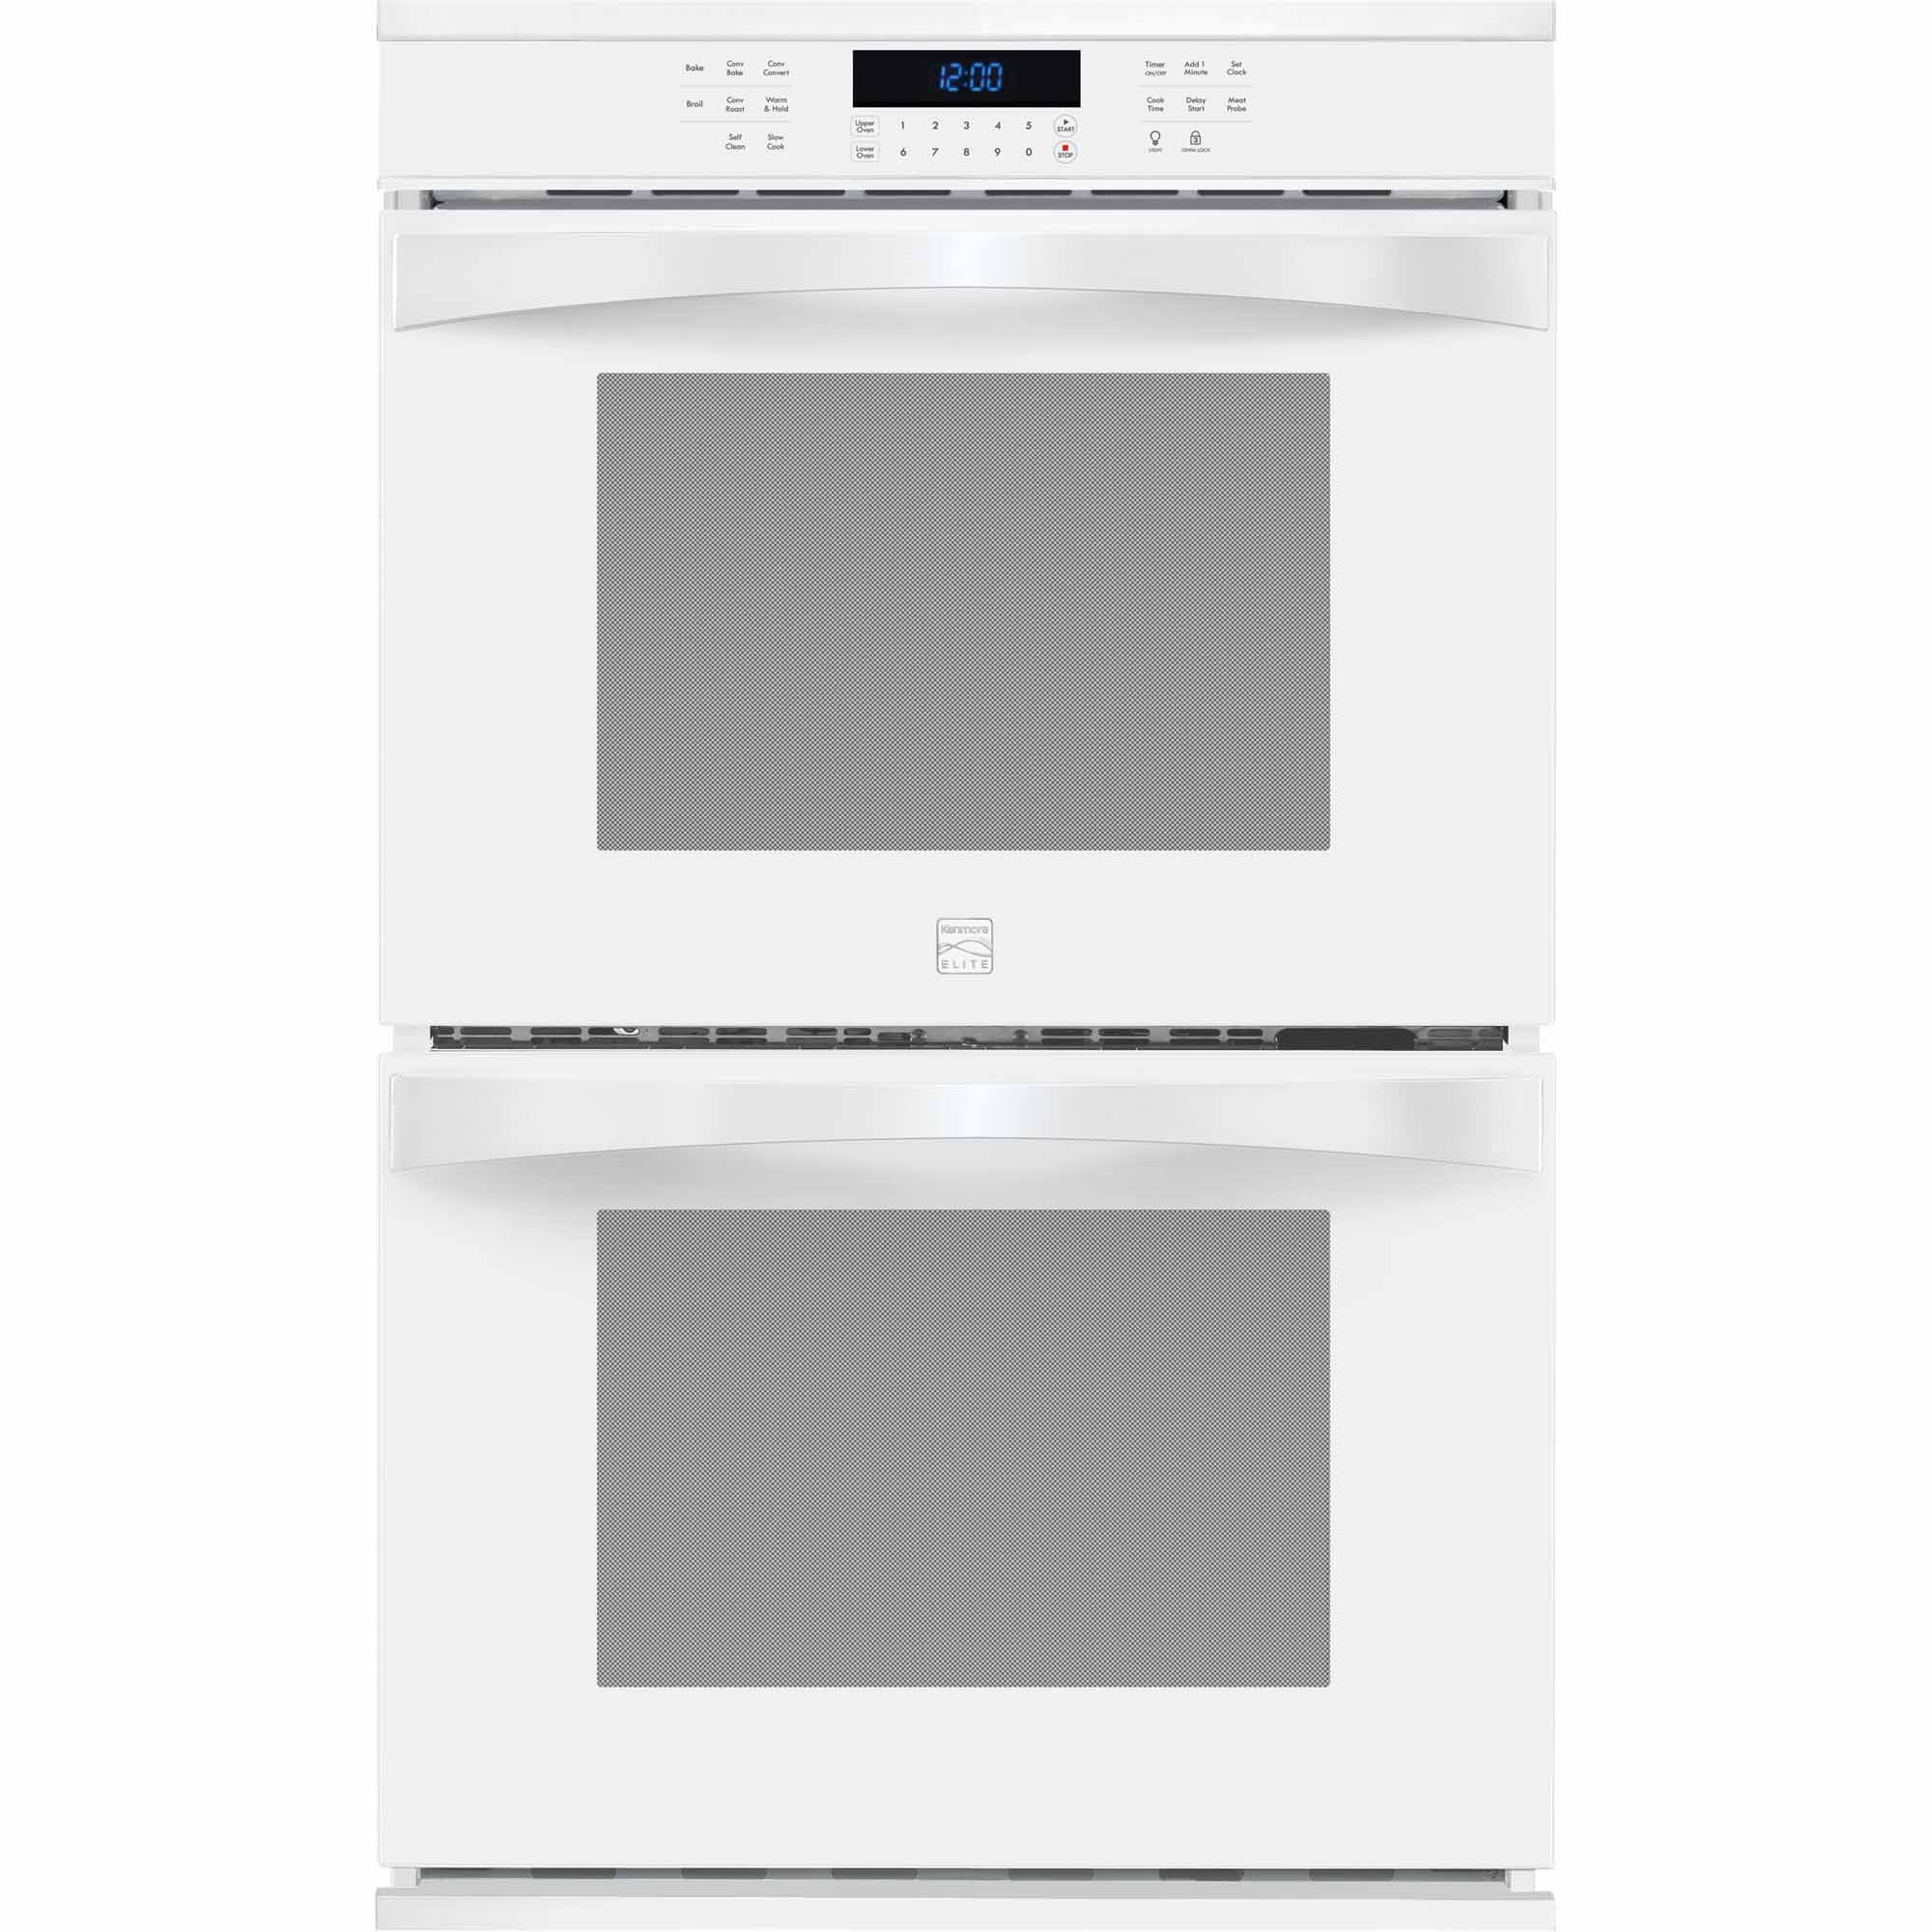 48452-30-Electric-Double-Wall-Oven-White